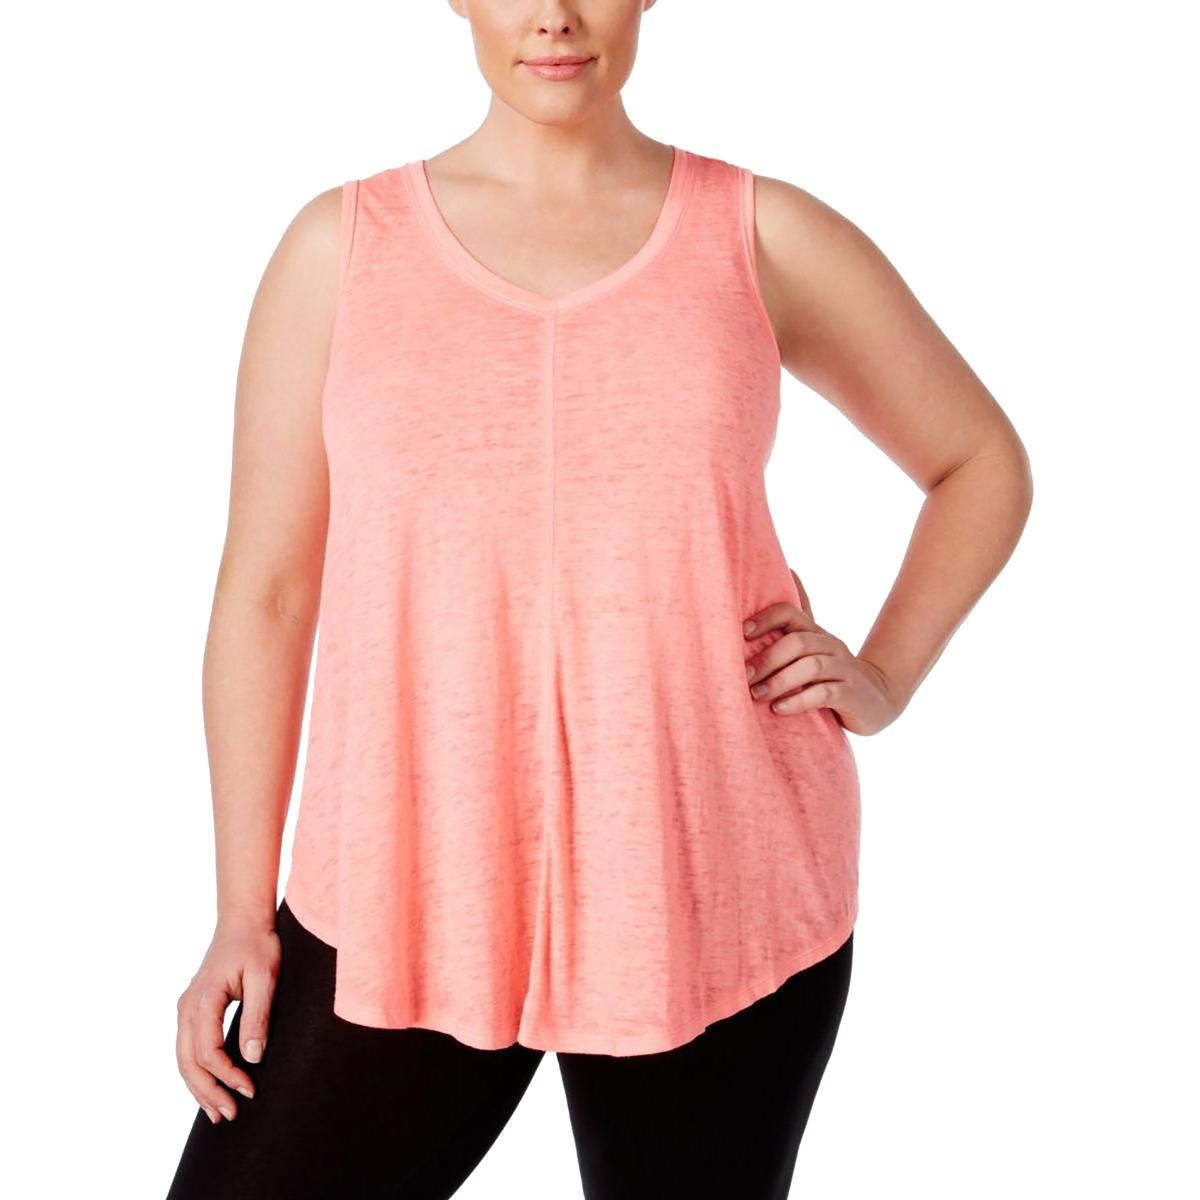 c5986ab8a9944 Calvin Klein Pink Womens Size 1x Plus Relaxed V-neck Tank Cami Top ...